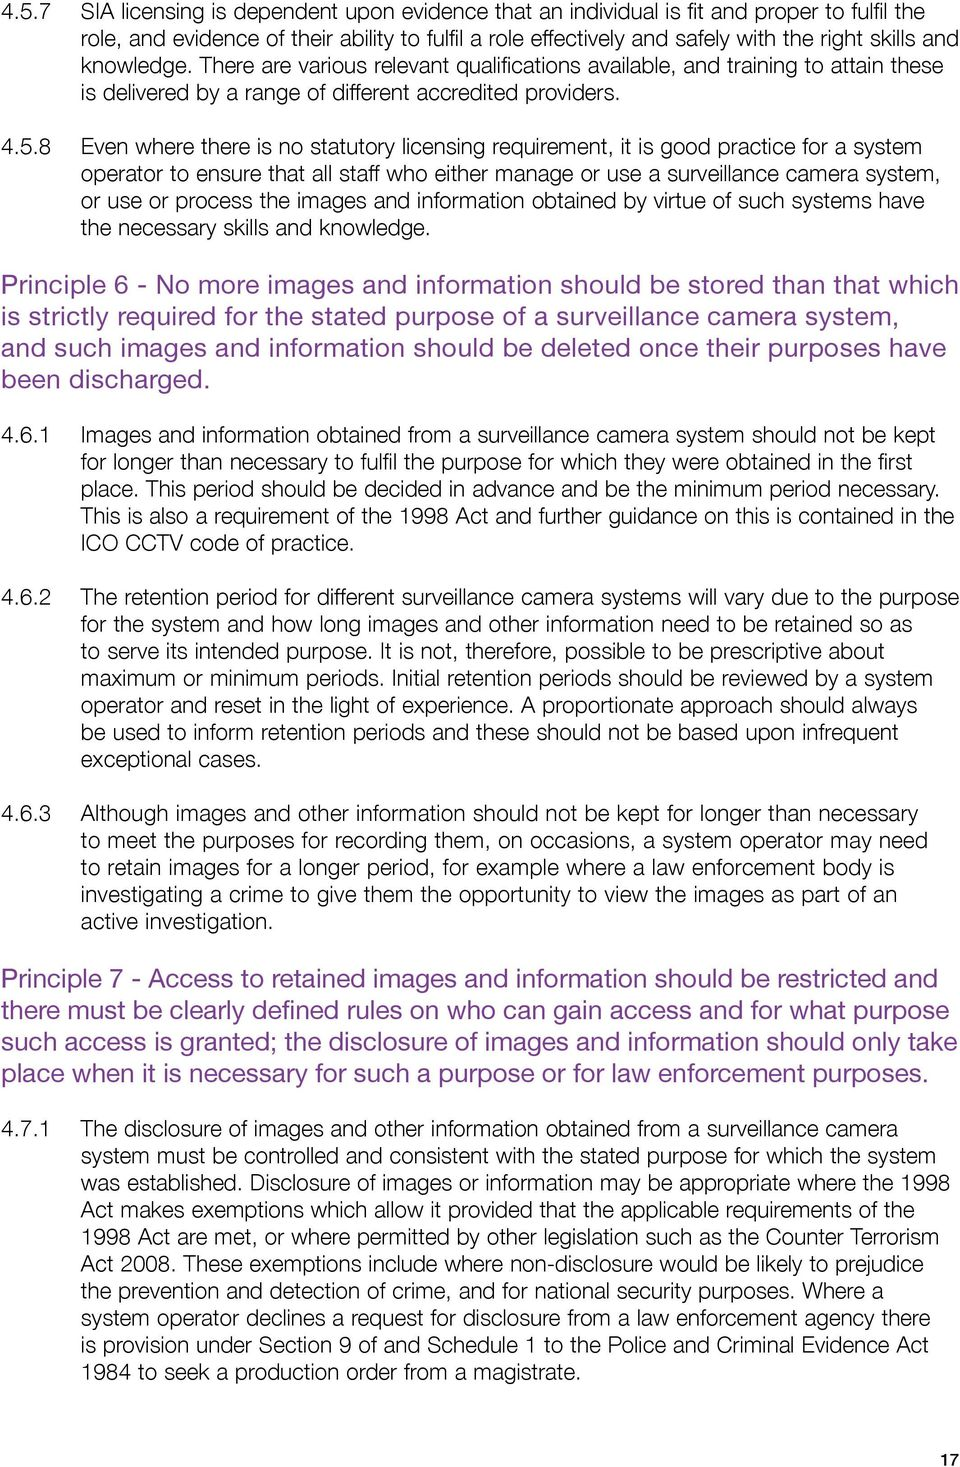 8 Even where there is no statutory licensing requirement, it is good practice for a system operator to ensure that all staff who either manage or use a surveillance camera system, or use or process